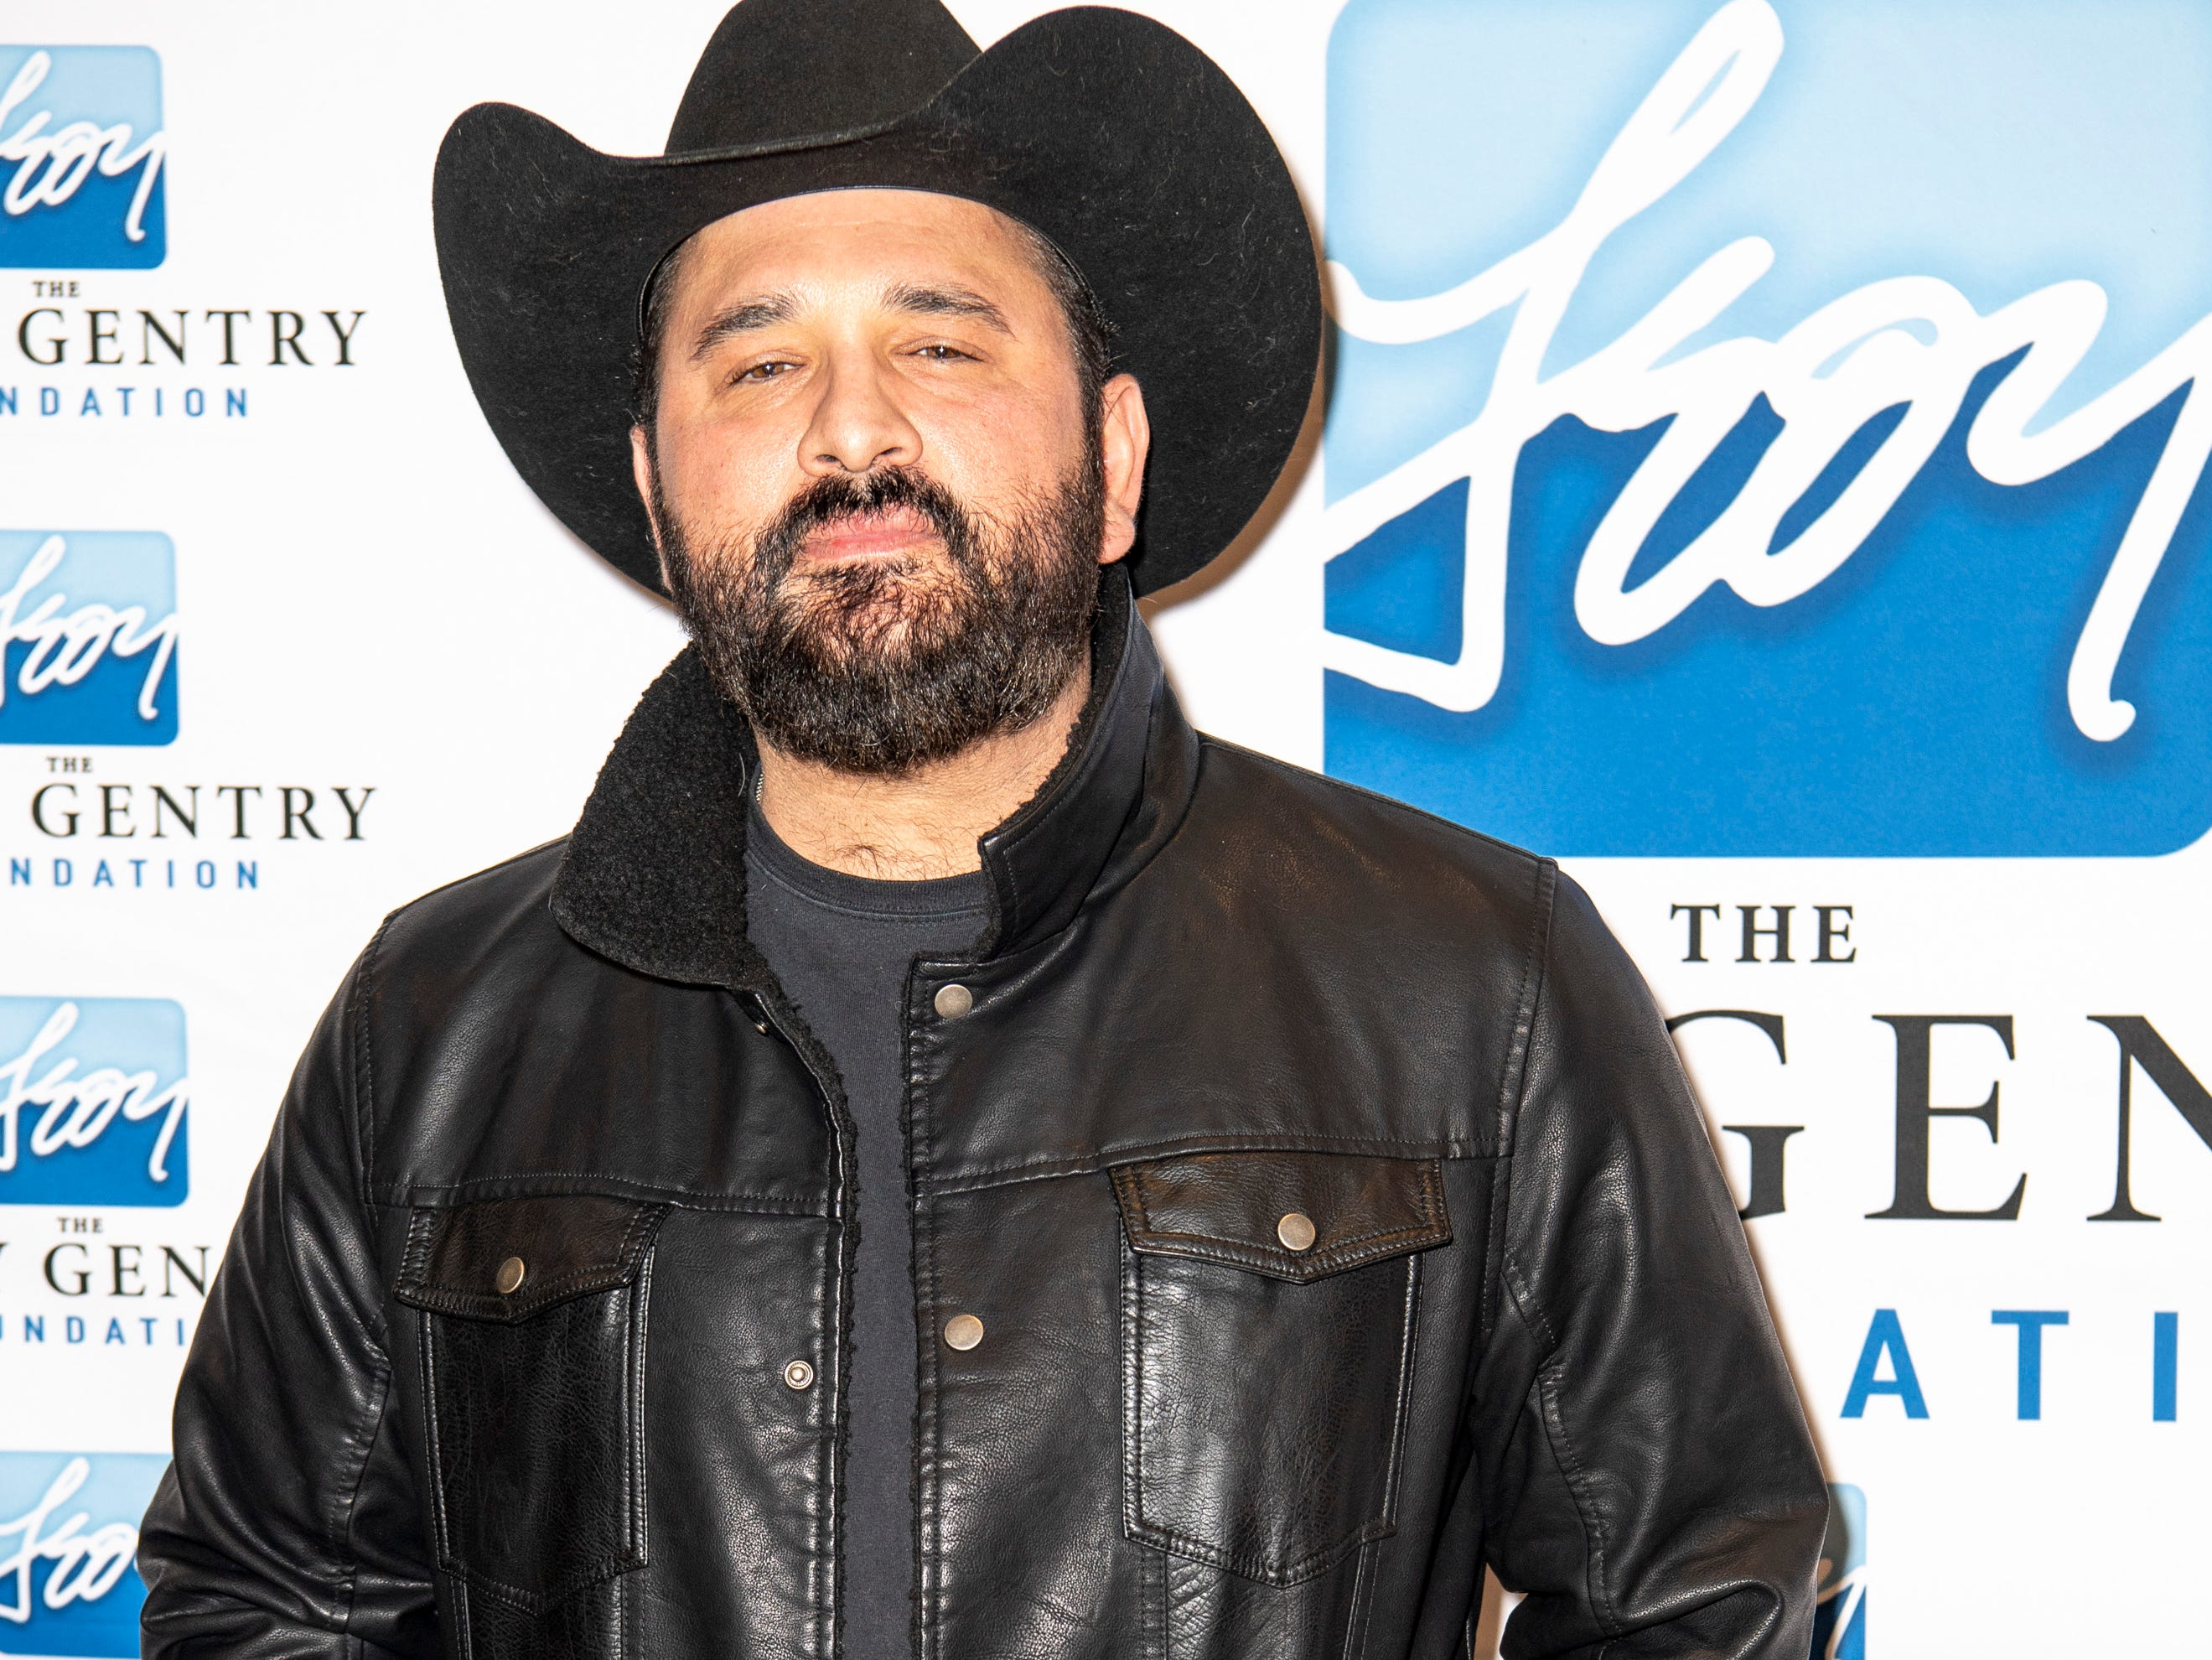 Ray Scott on the red carpet before the C'Ya On The Flipside Benefit Concert at the Grand Ole Opry House in Nashville, Tenn., Wednesday, Jan. 9, 2019.